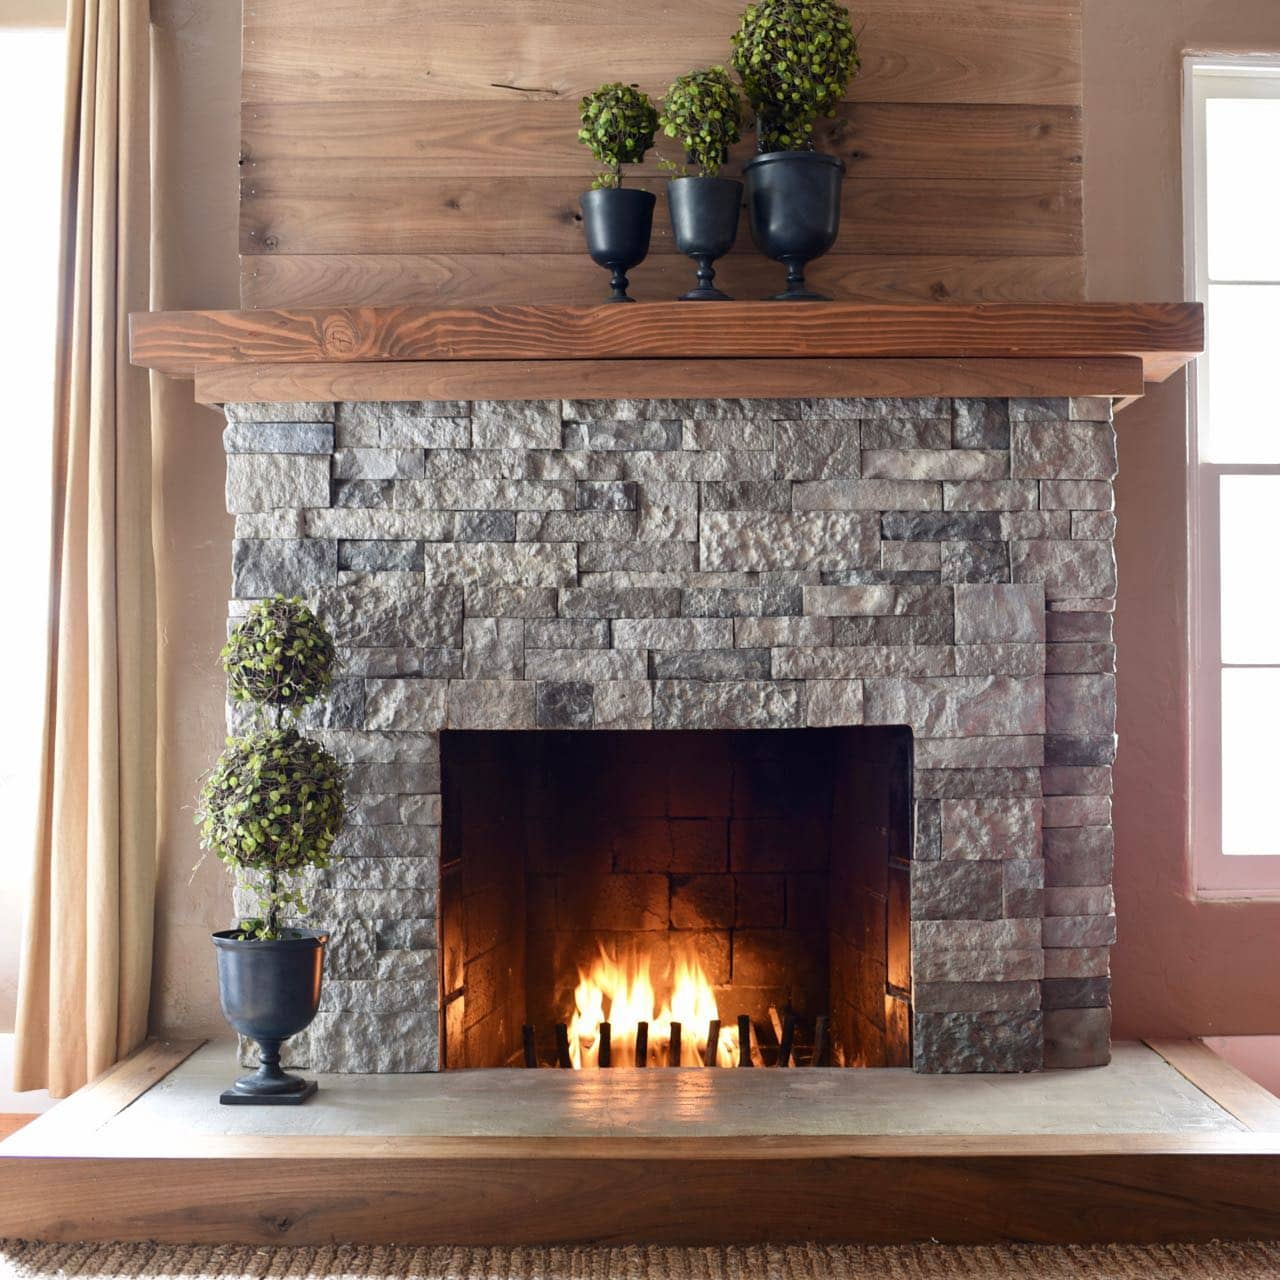 Airstone Fireplace Makeover Transform Your Old With Some And This Easy Diy Tutorial